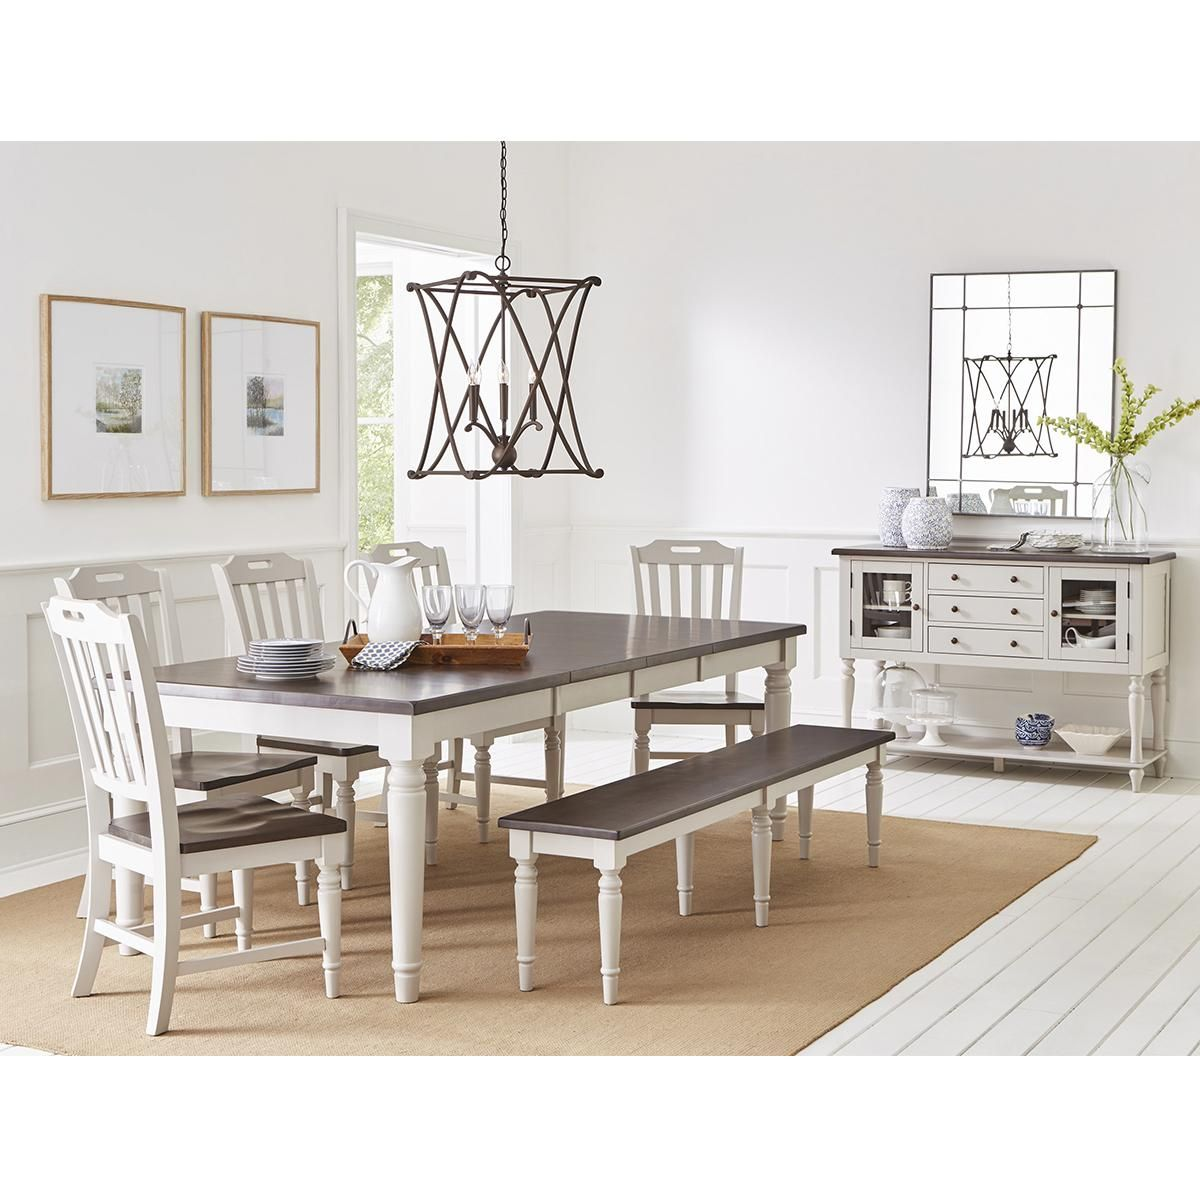 34+ Crosley furniture shelby 5 piece dining set in white Various Types